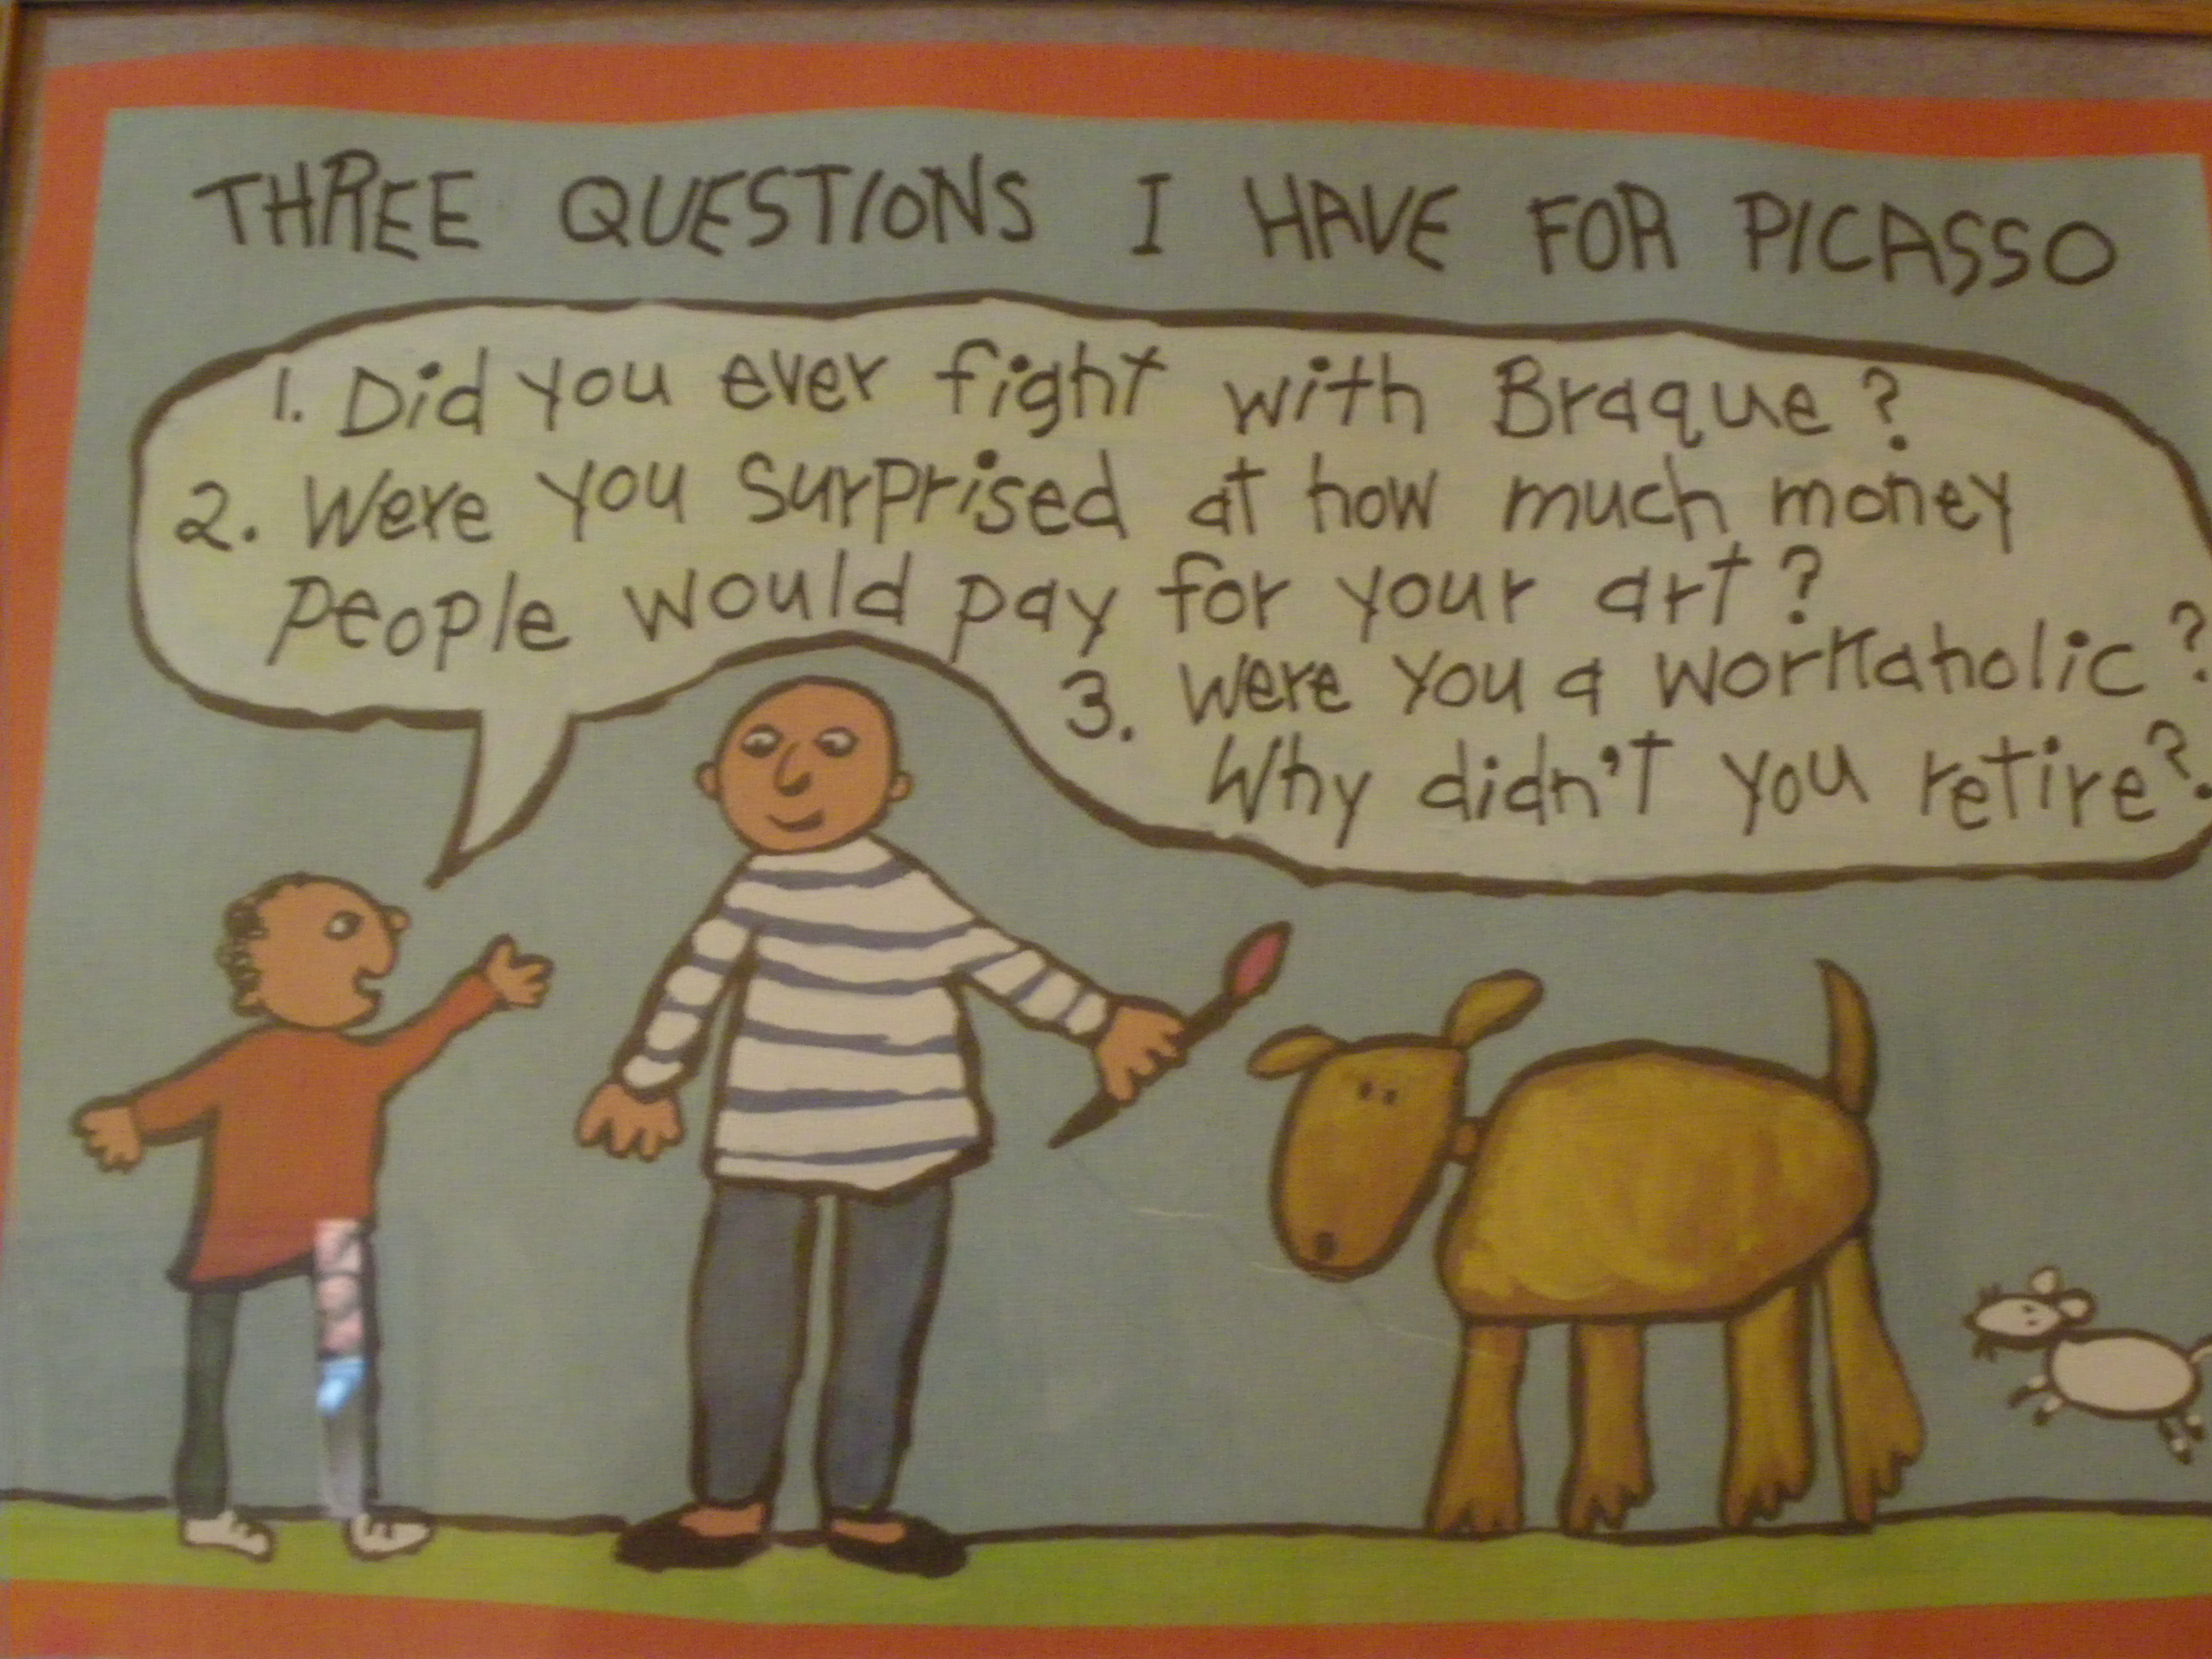 That´s actually 4 questions.